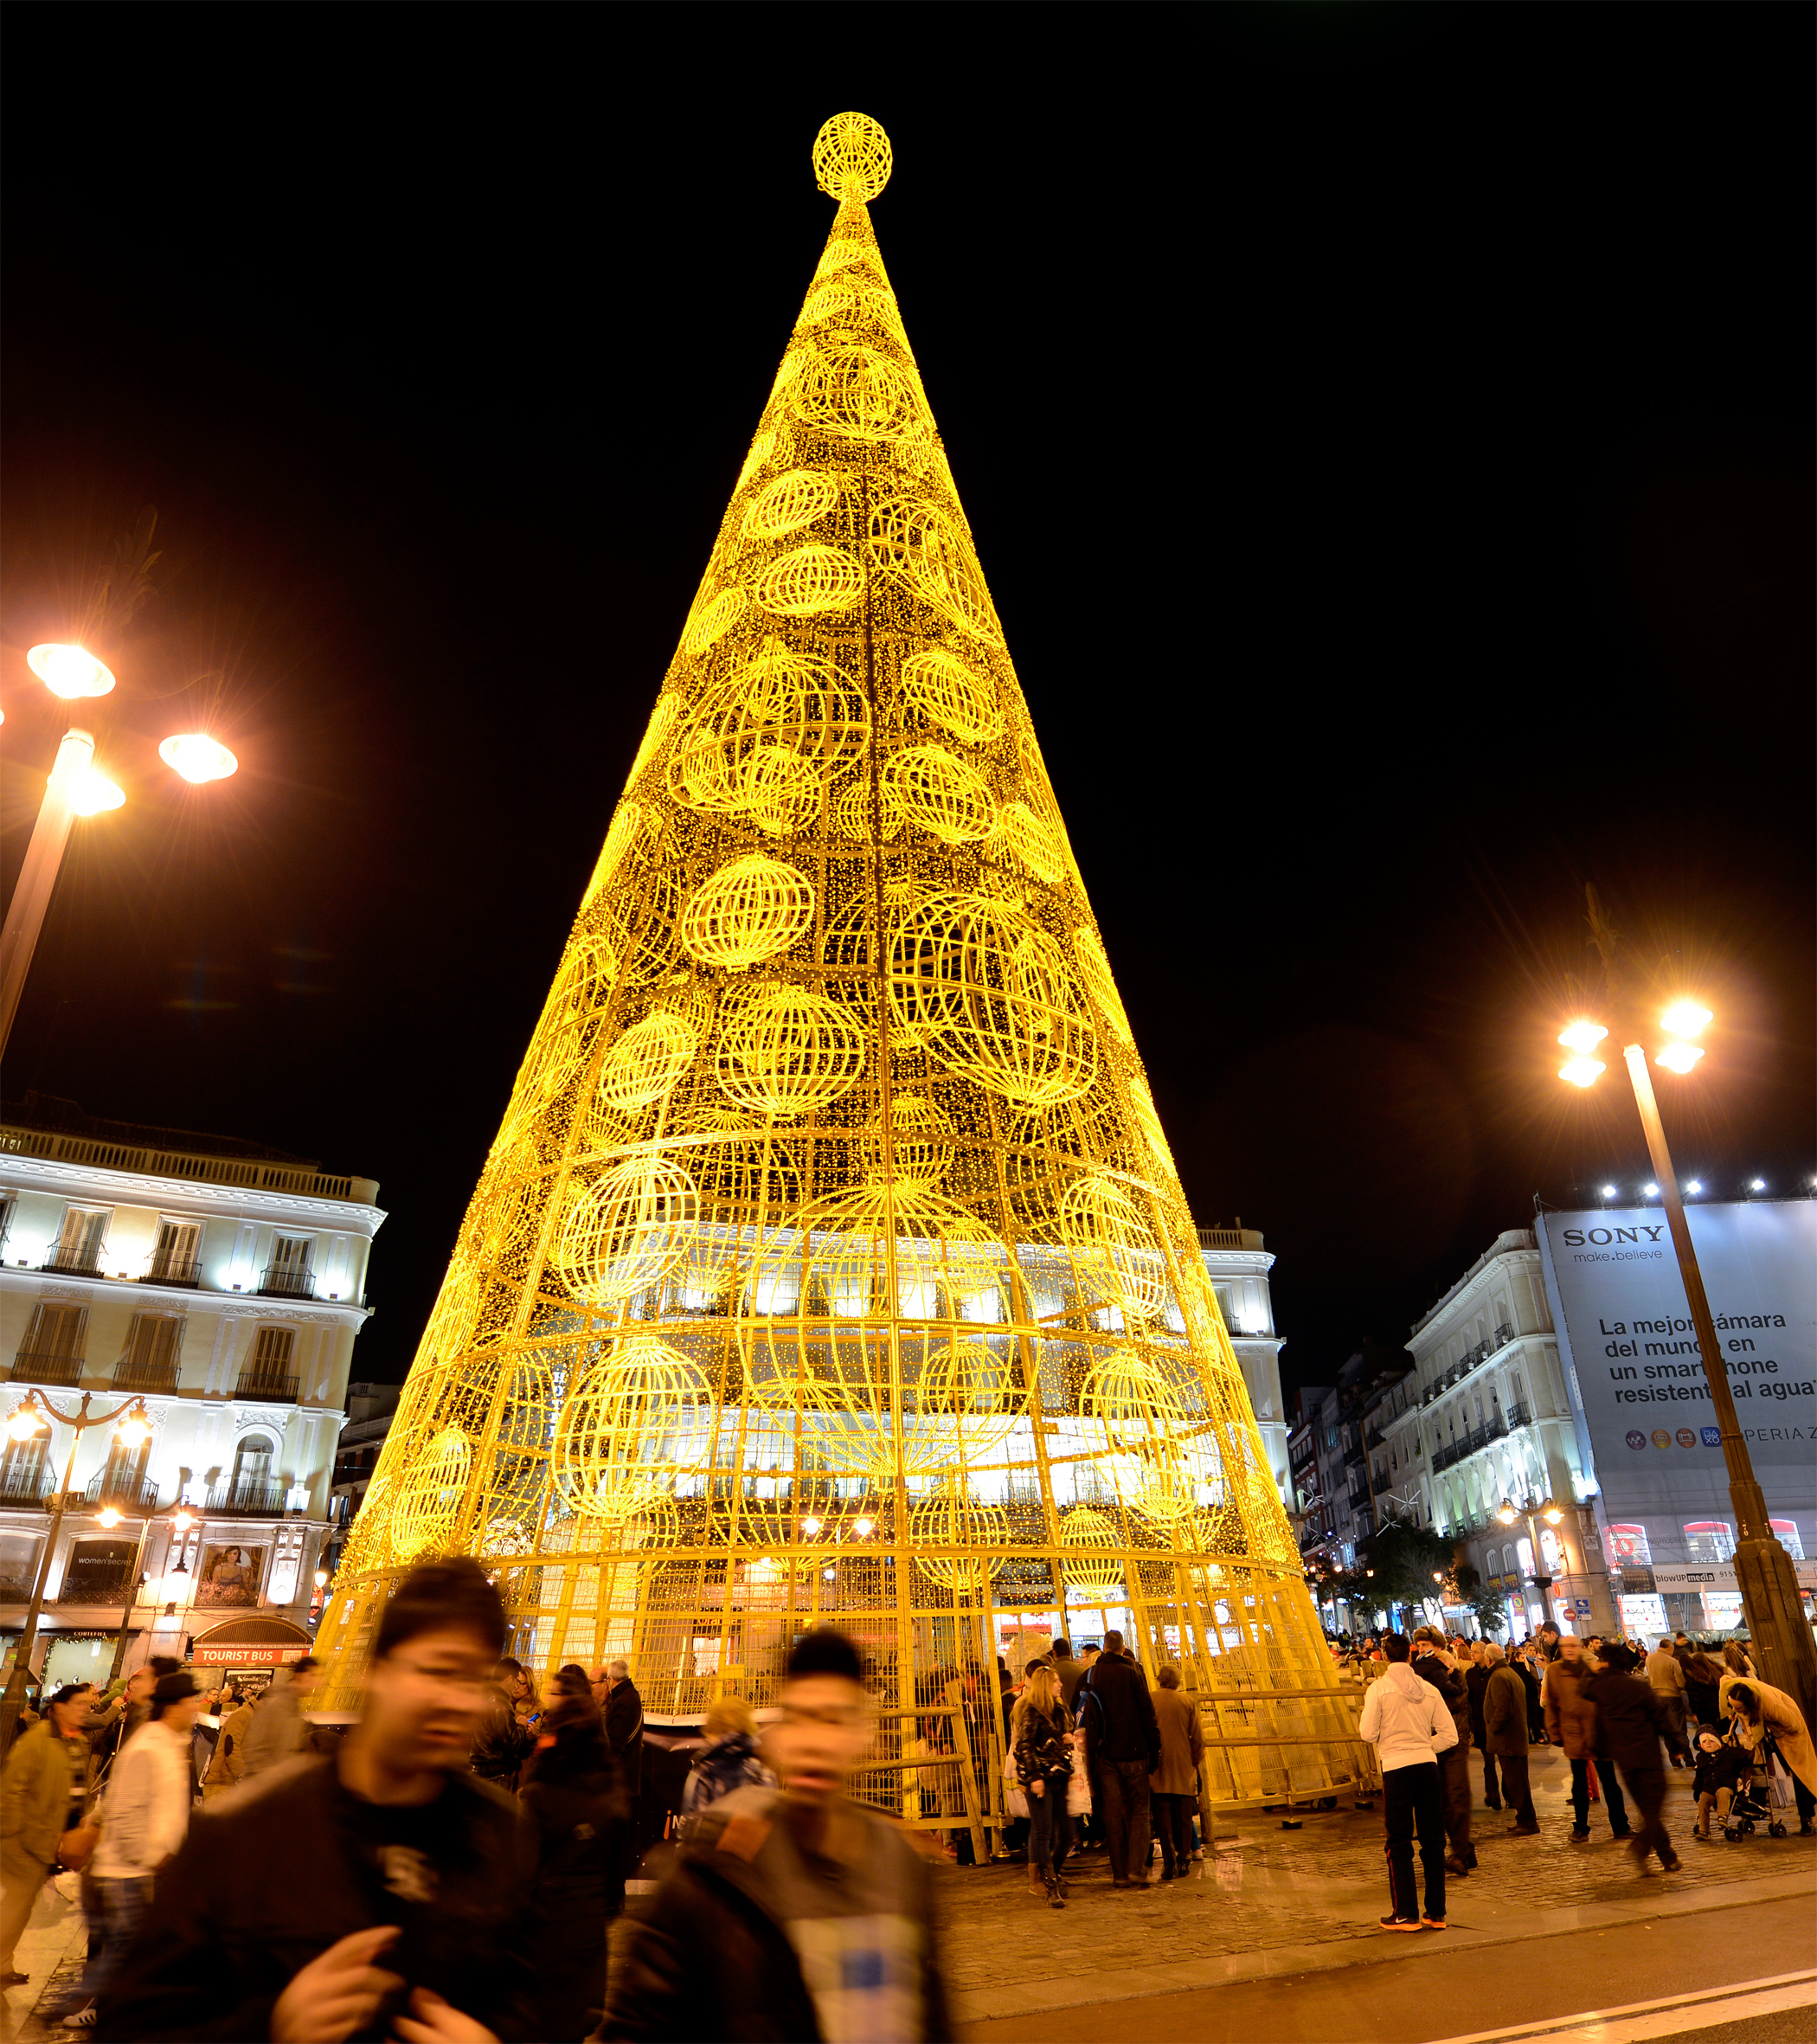 A giant Christmas tree illuminates the Puerta del Sol in the centre of Madrid.